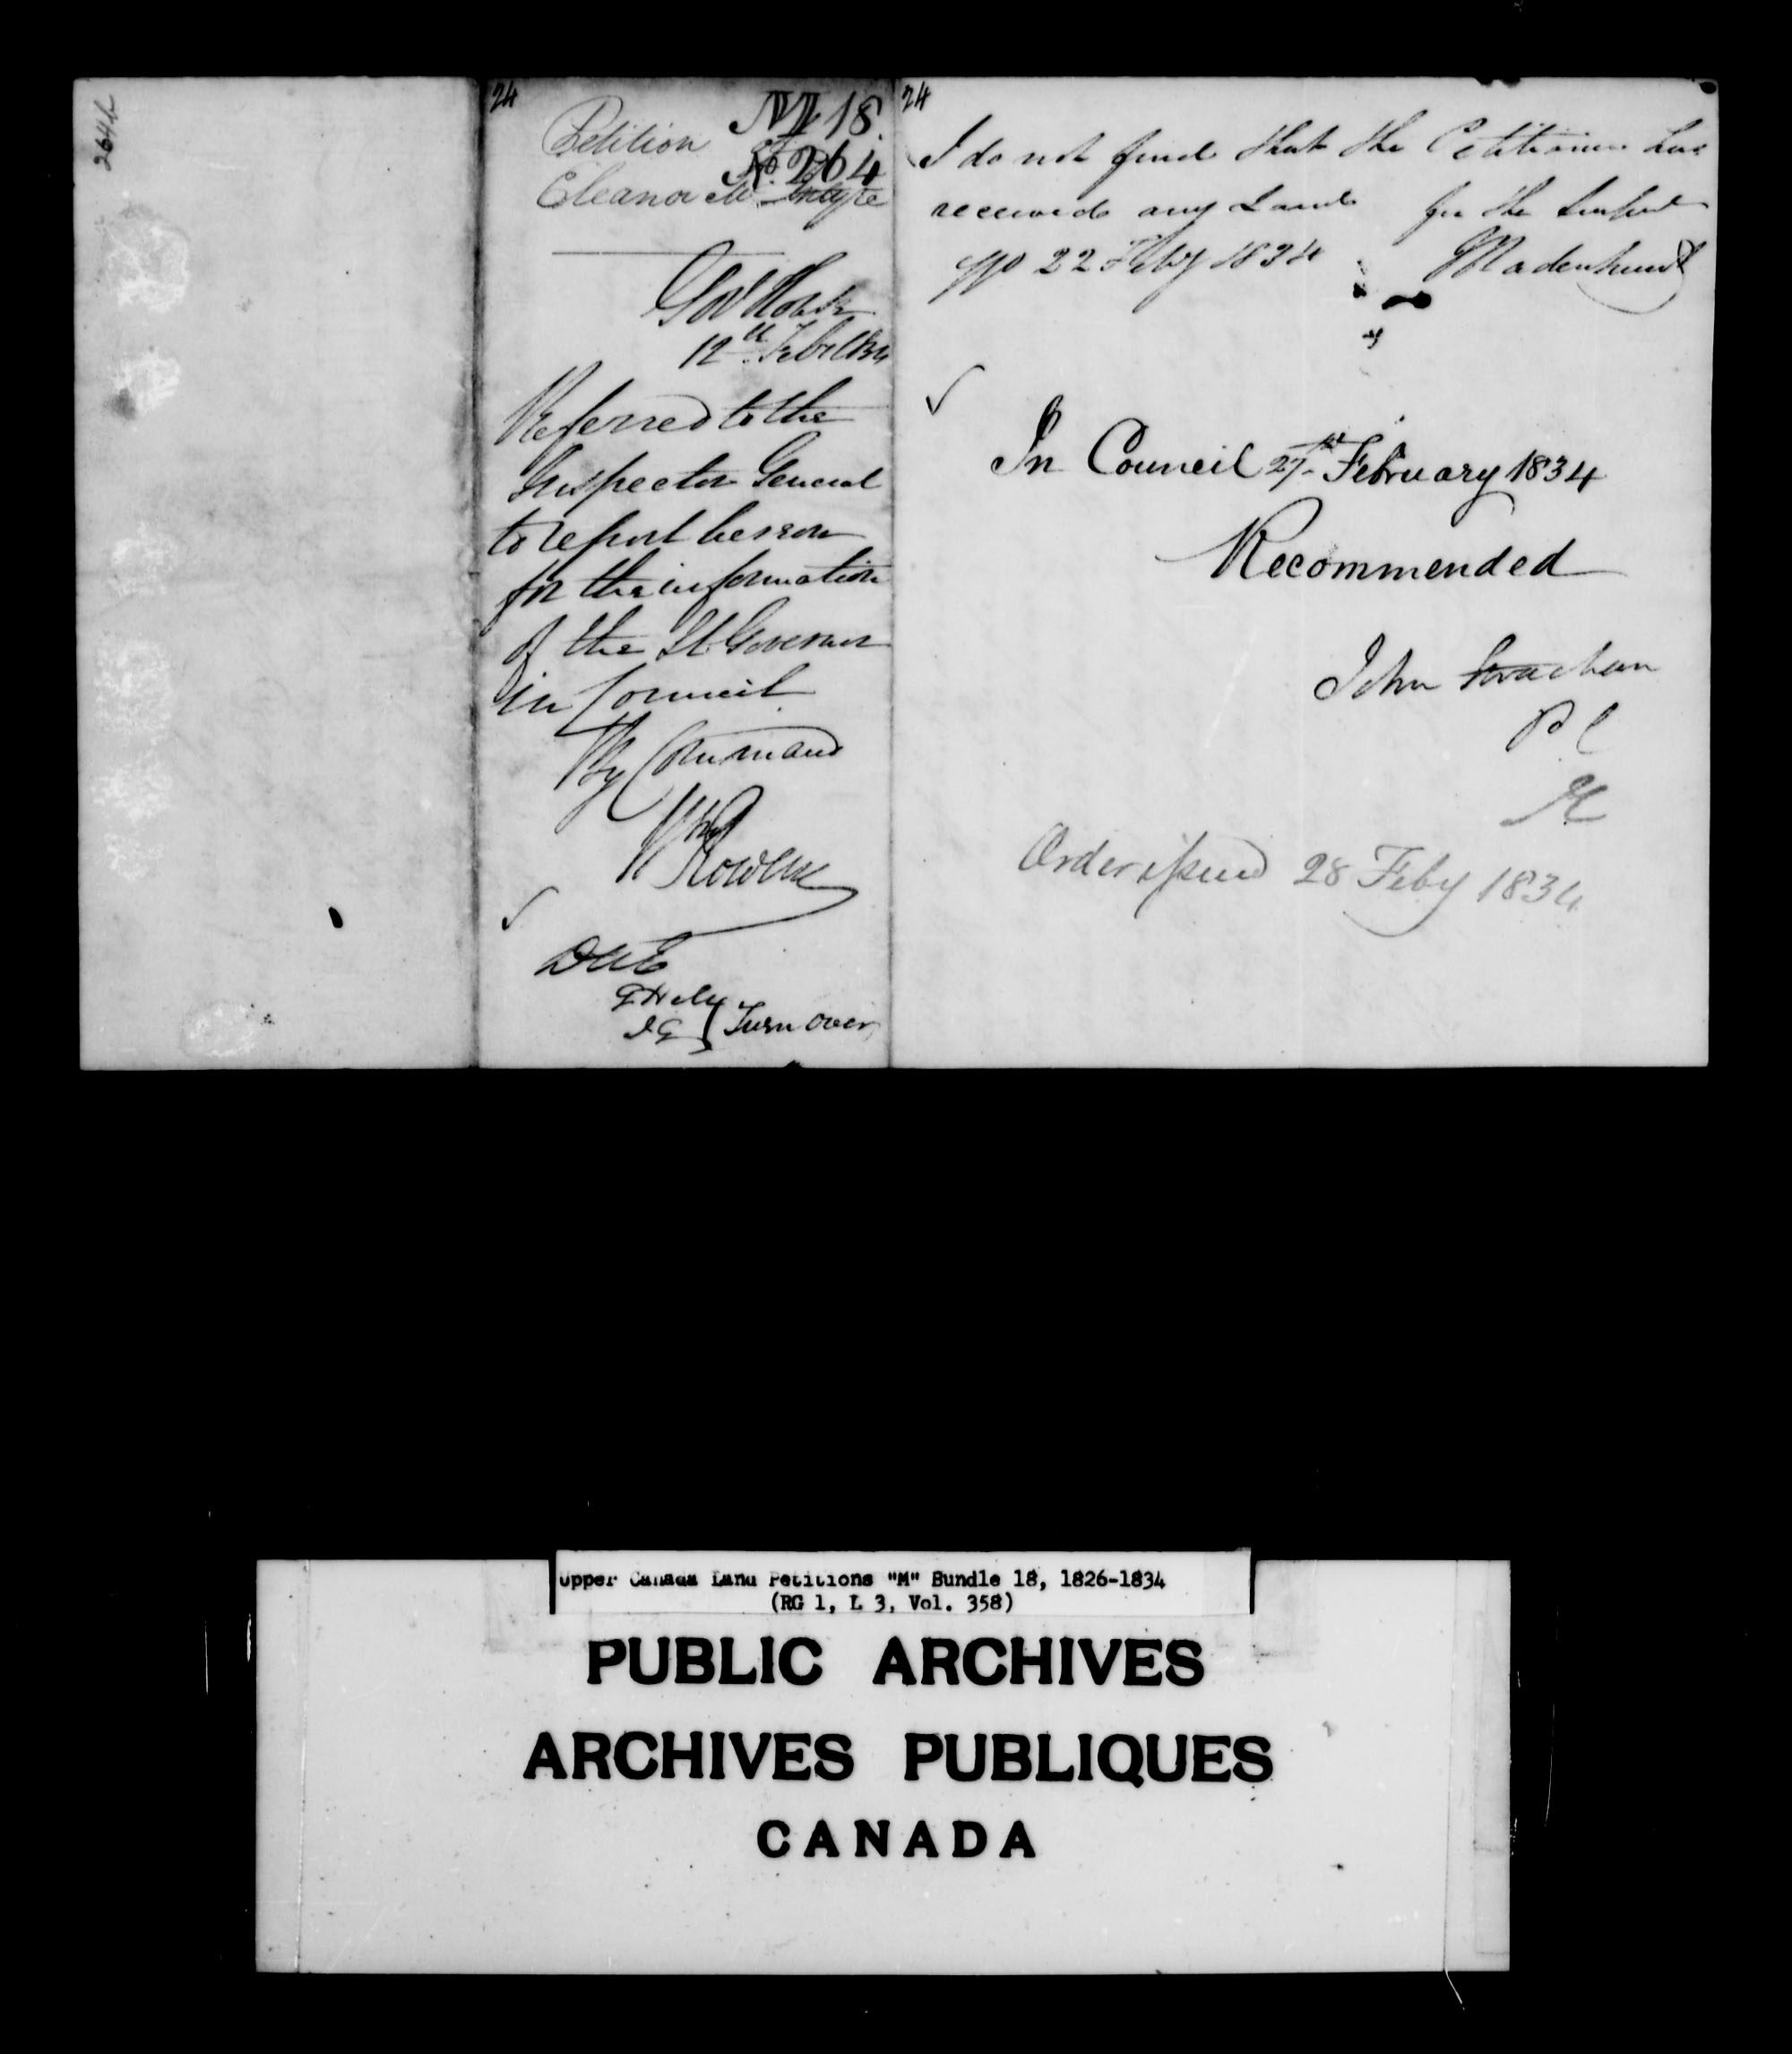 Title: Upper Canada Land Petitions (1763-1865) - Mikan Number: 205131 - Microform: c-2213